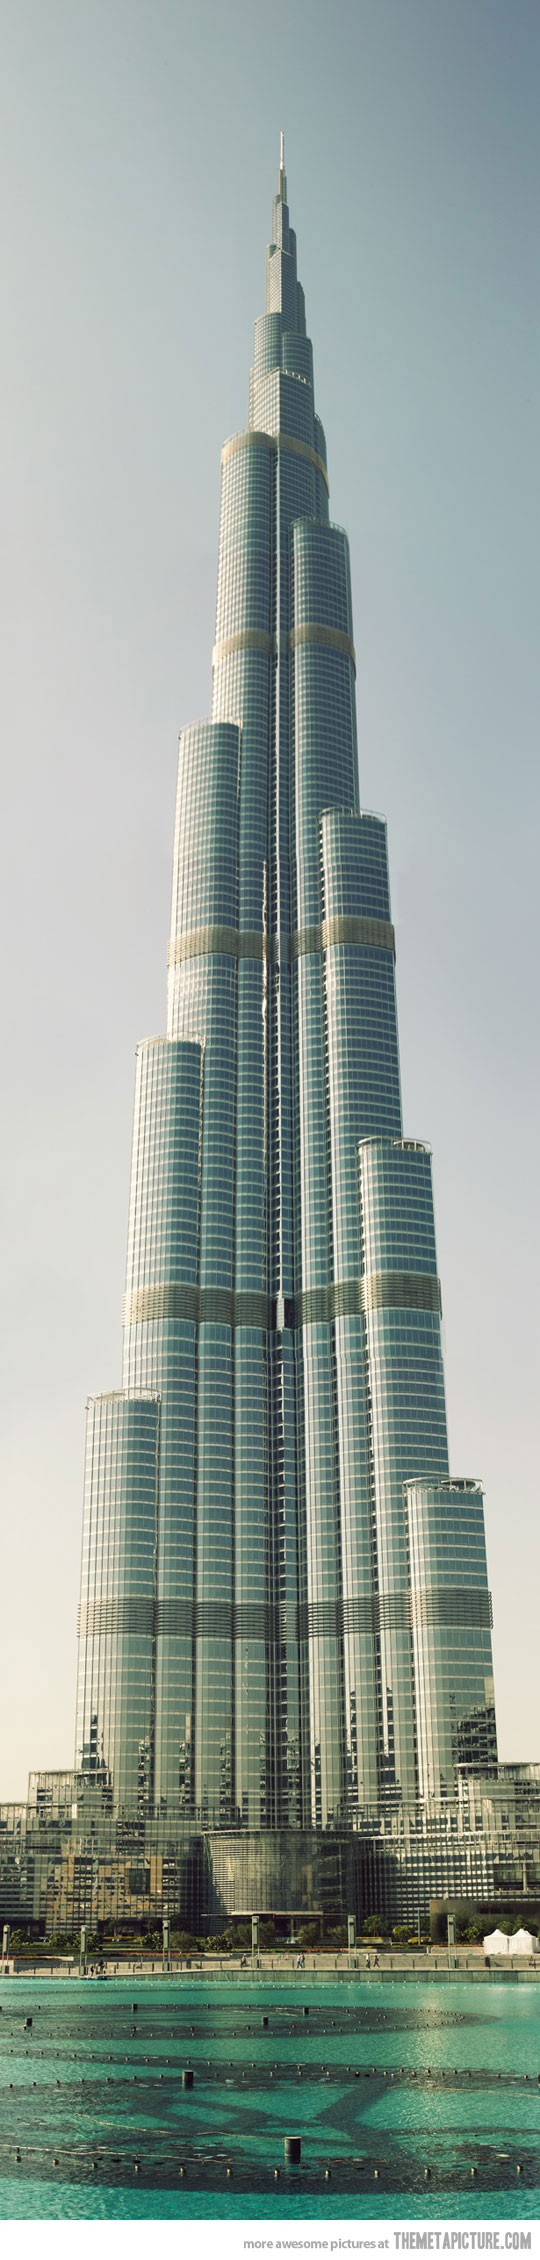 Photo:  Burj Khalifa The tallest building in the world